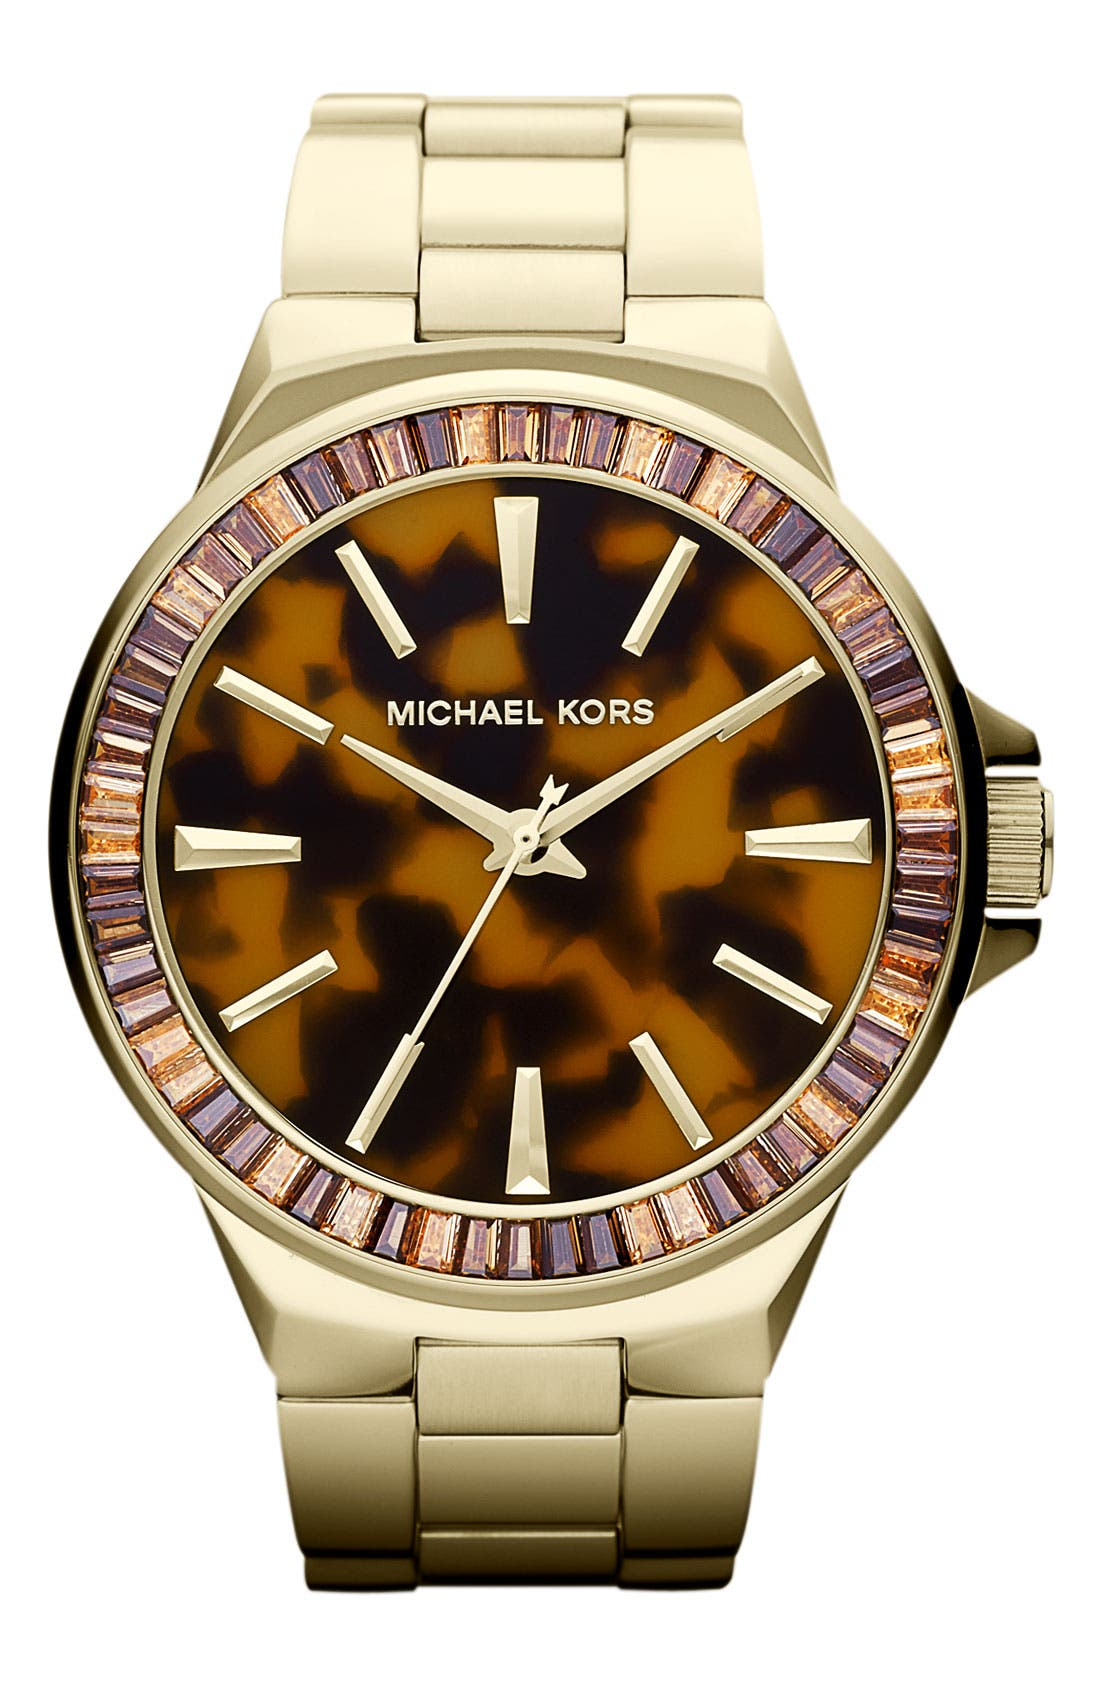 Main Image - Michael Kors 'Gramercy' Round Bracelet Watch, 45mm